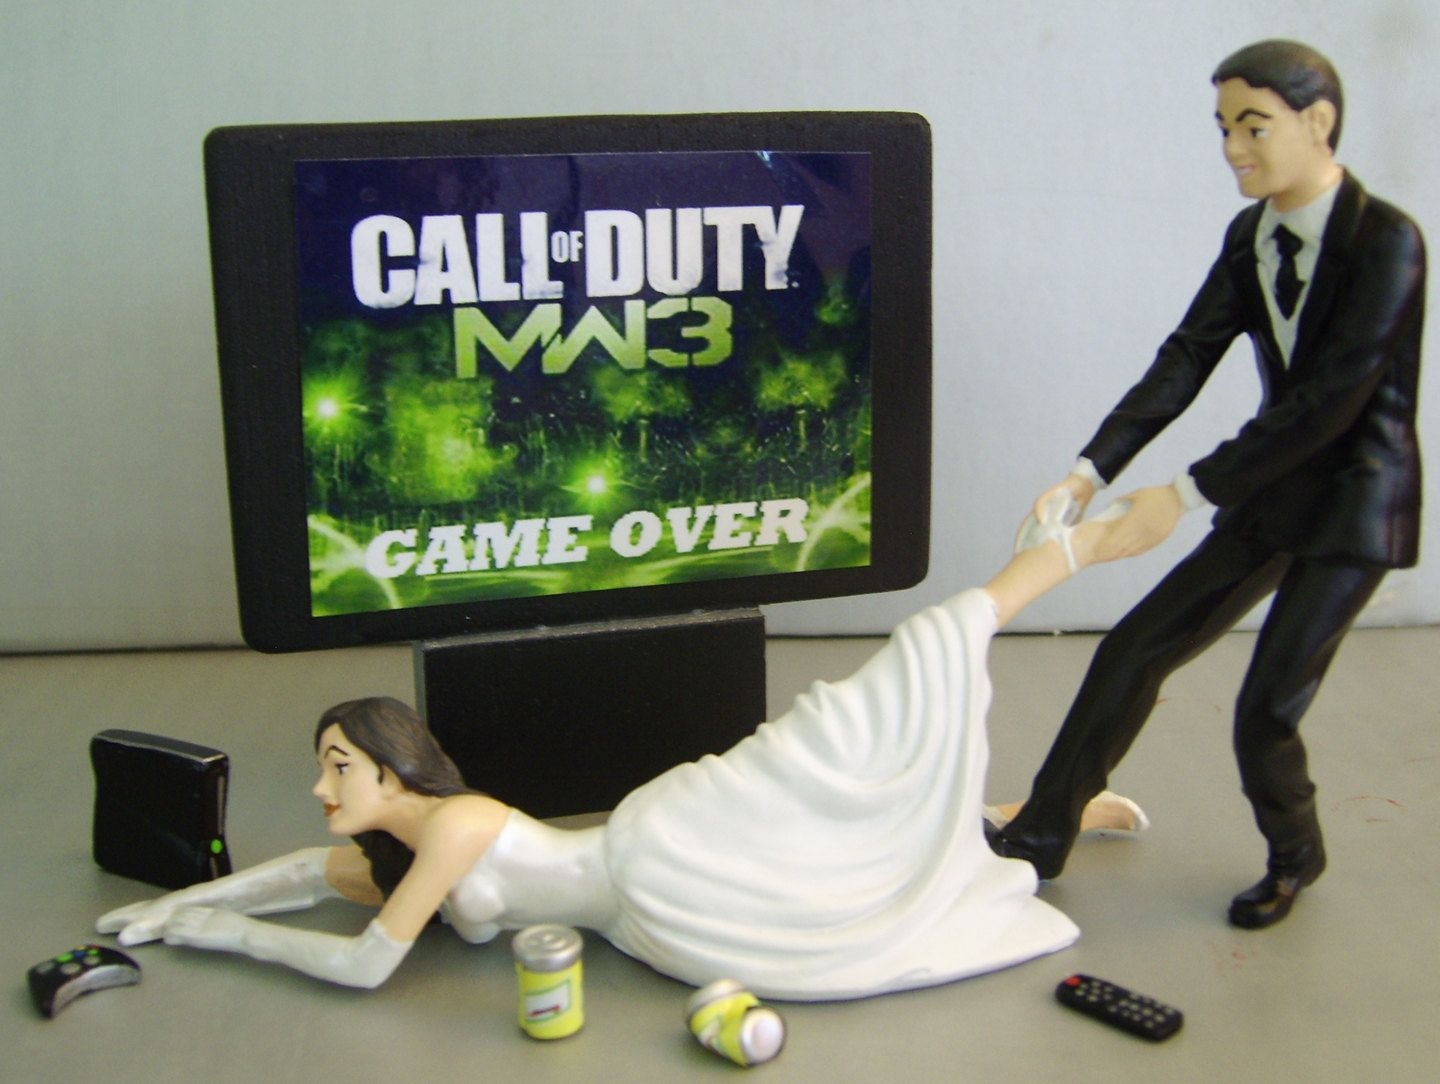 gamer wedding rings VIDEO Game junkie BRIDE Customized Wedding Cake Topper New Design The